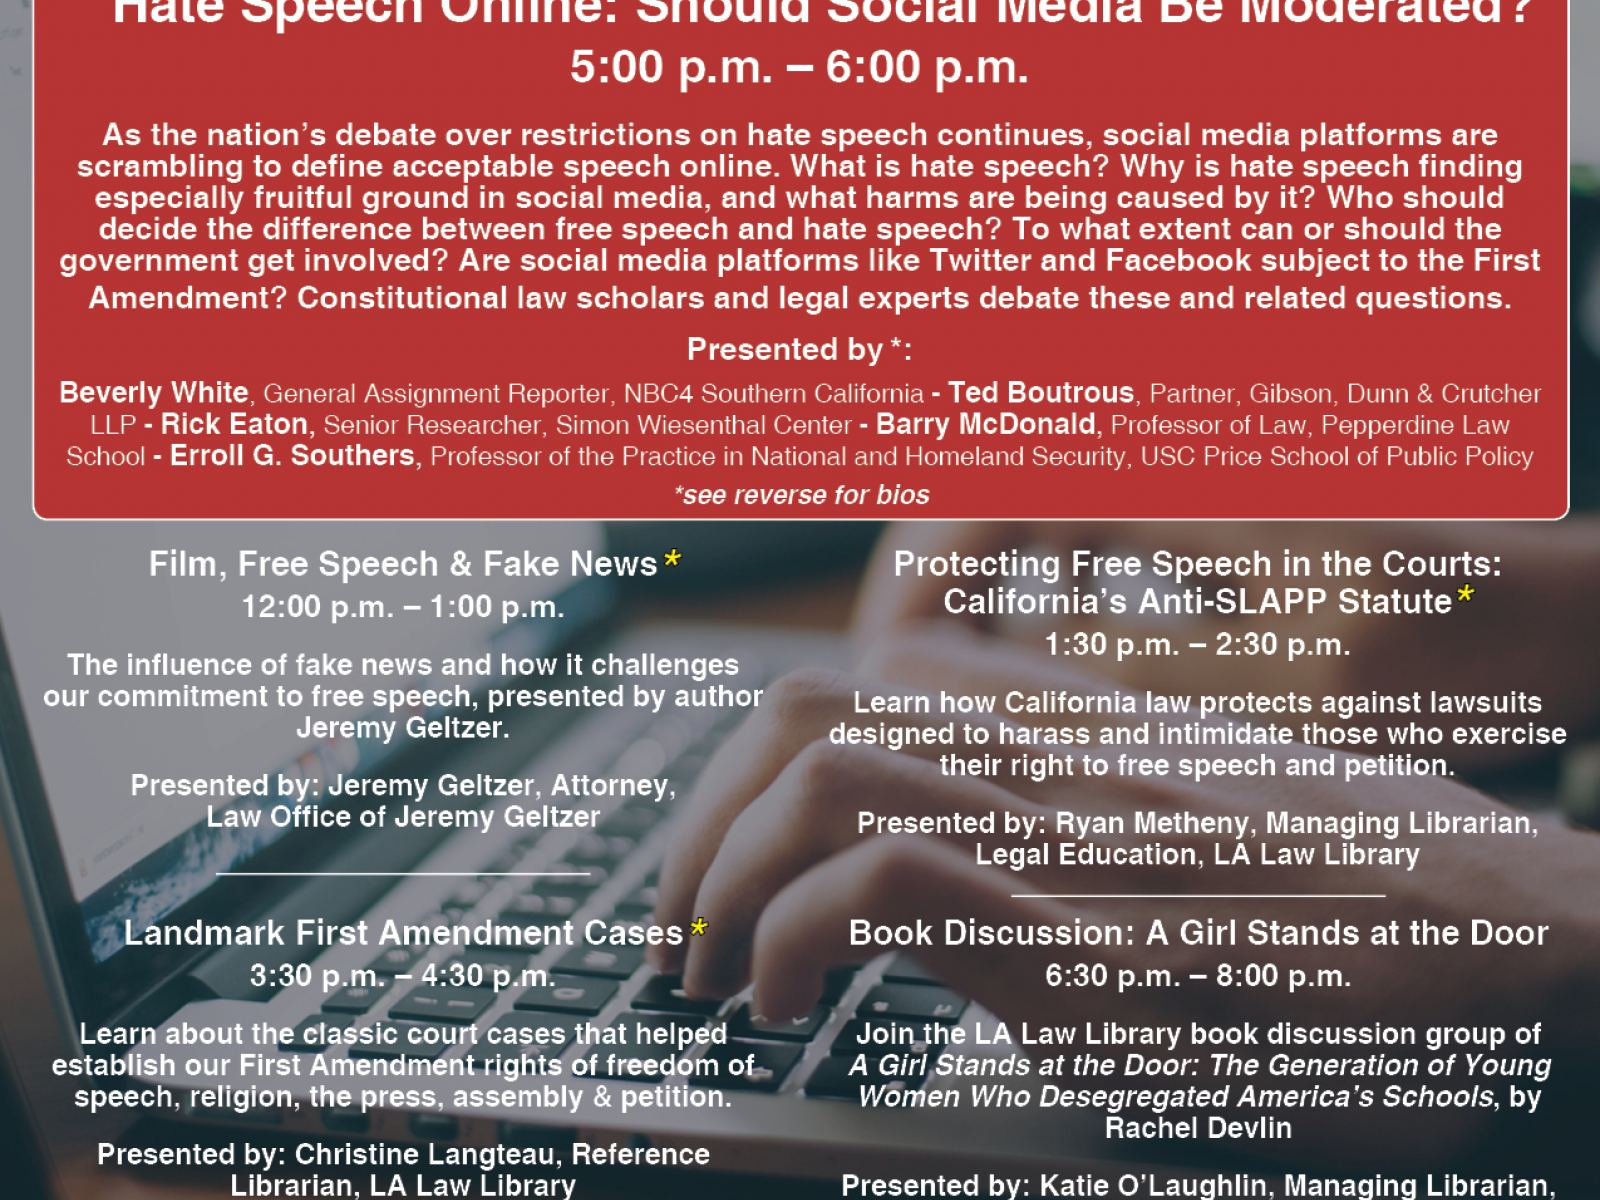 Hate Speech Online: Should Social Media Be Moderated